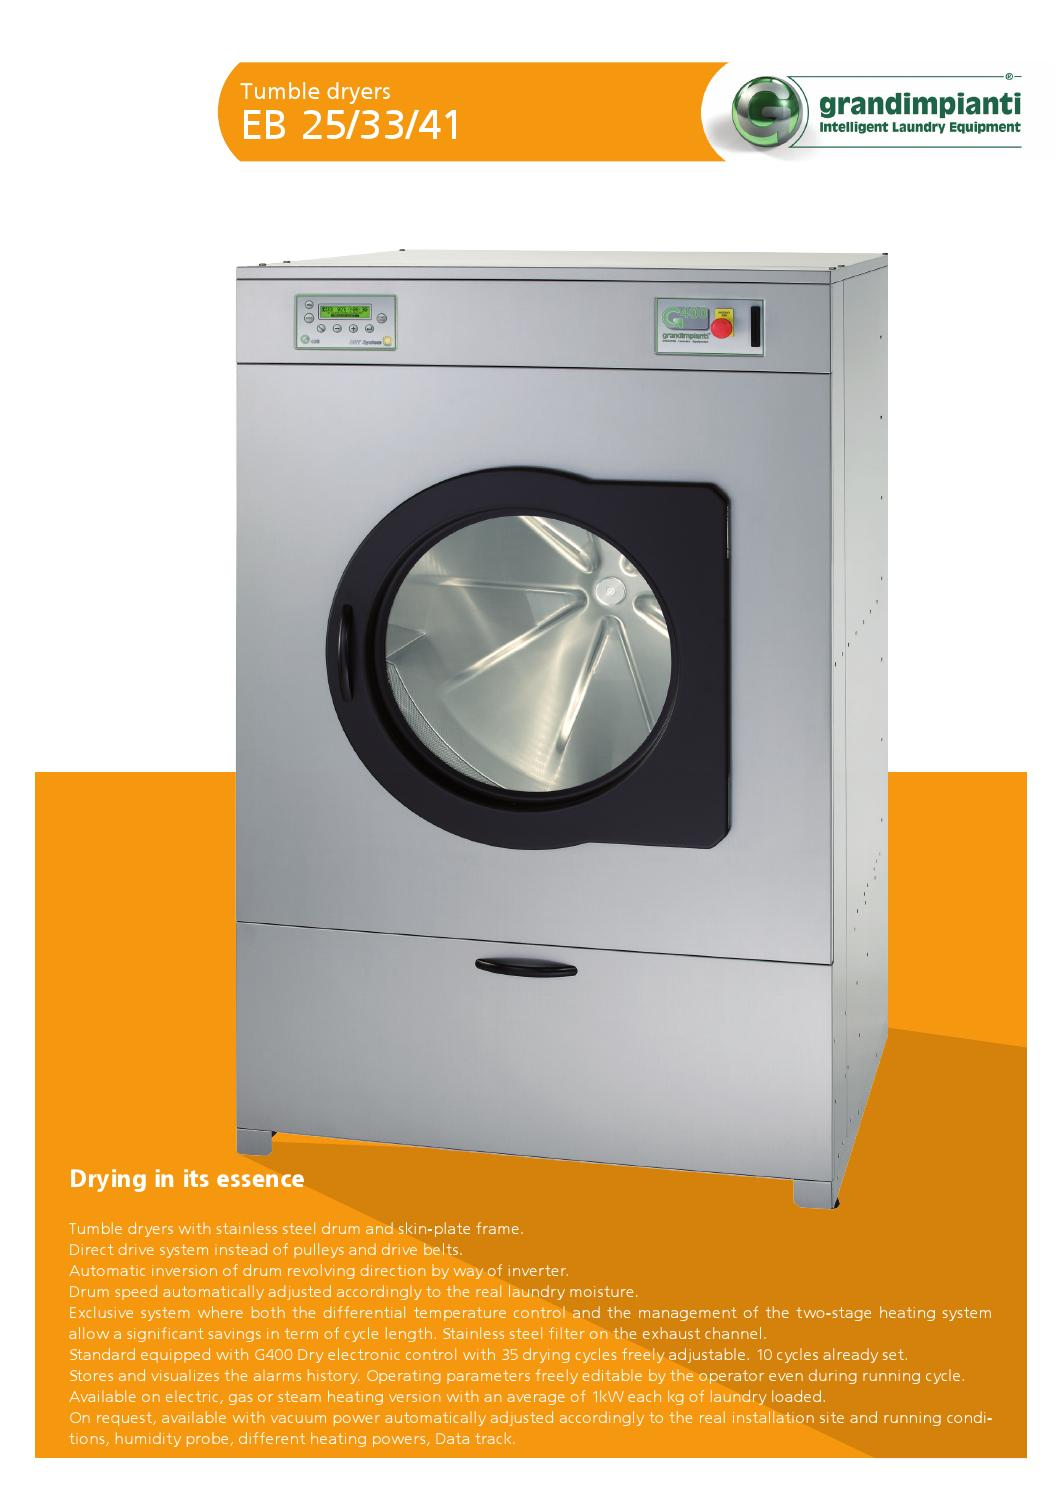 Hotel In Tumble Dryer ~ Tumble dryer eb by kda hotel and institutional